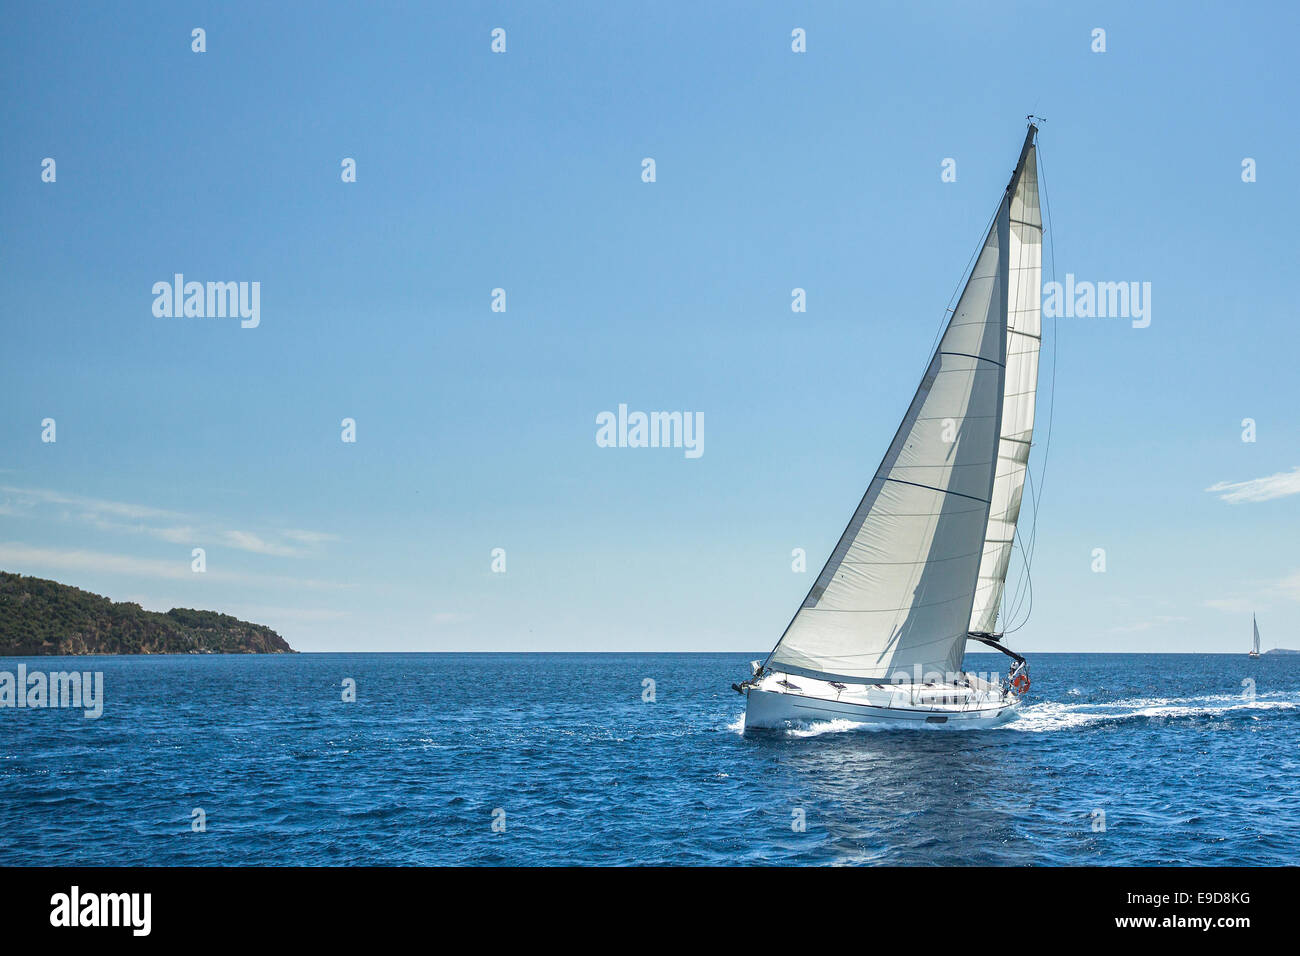 Sailing off the coast of Greece in the Aegean Sea. Luxury yachts. - Stock Image